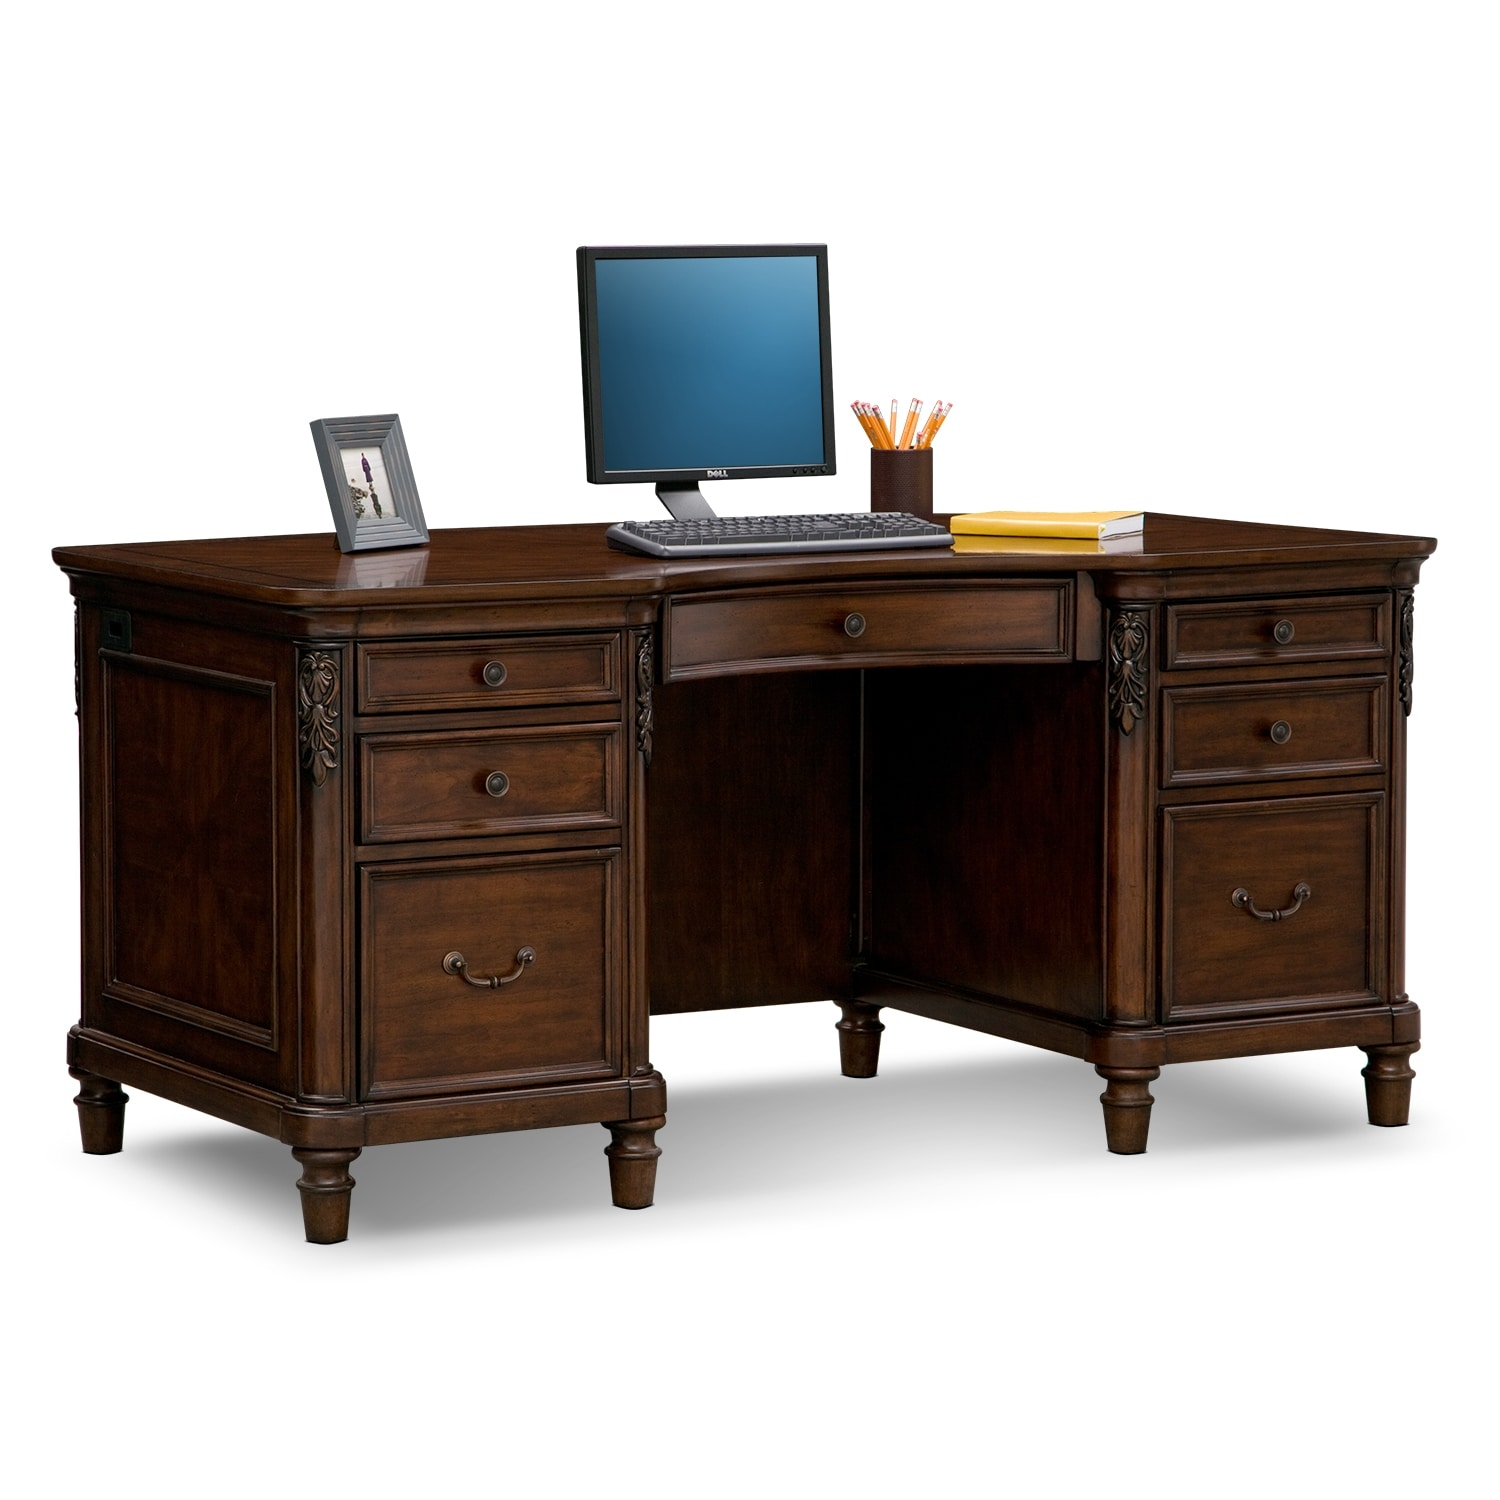 Ashland Executive Desk - Cherry